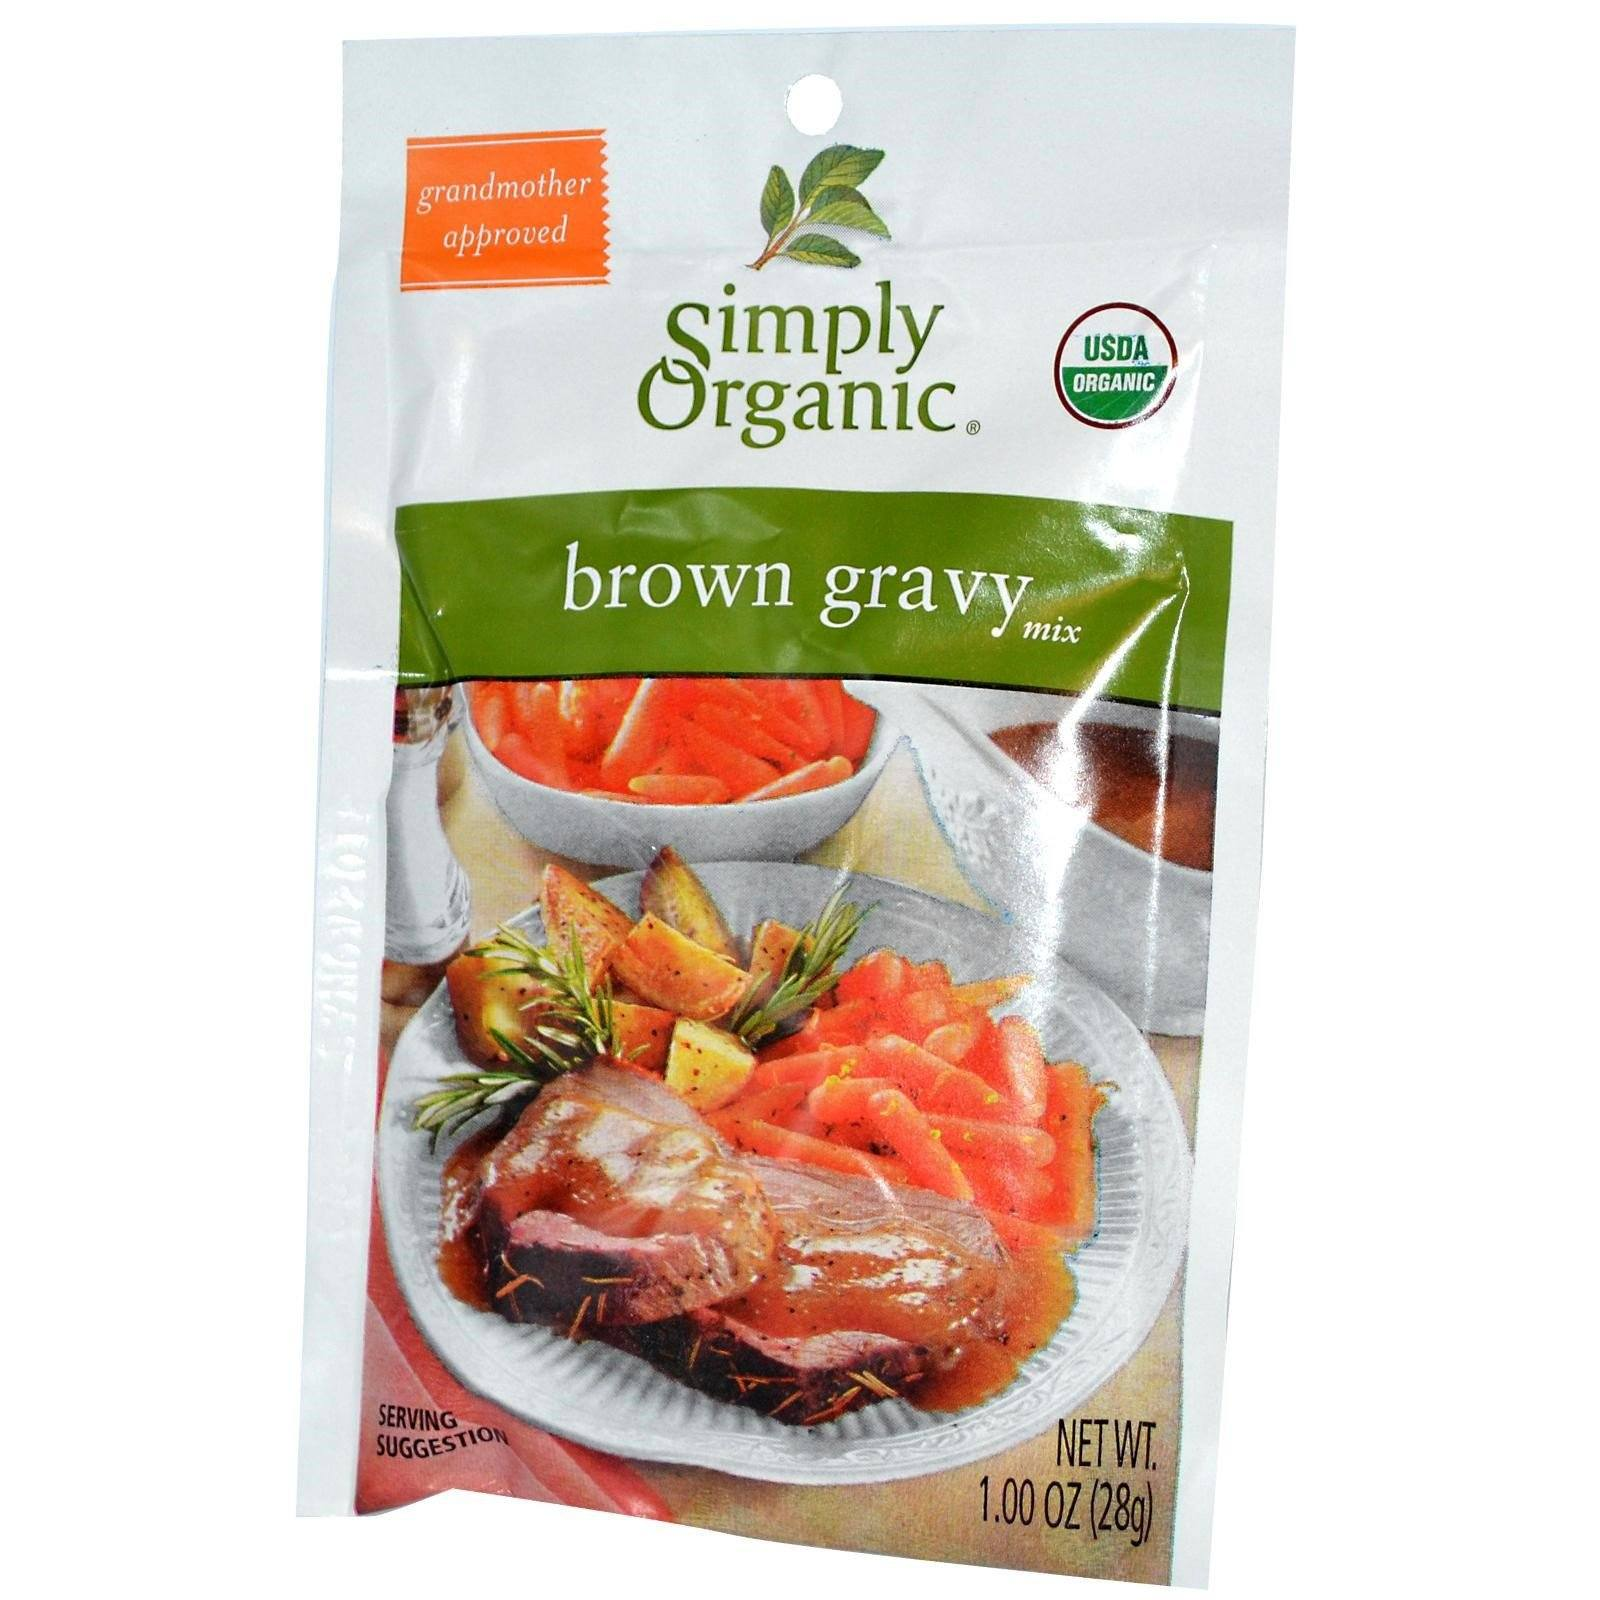 Food & Drink - Simply Organic - Brown Gravy Seasoning Mix, 24g